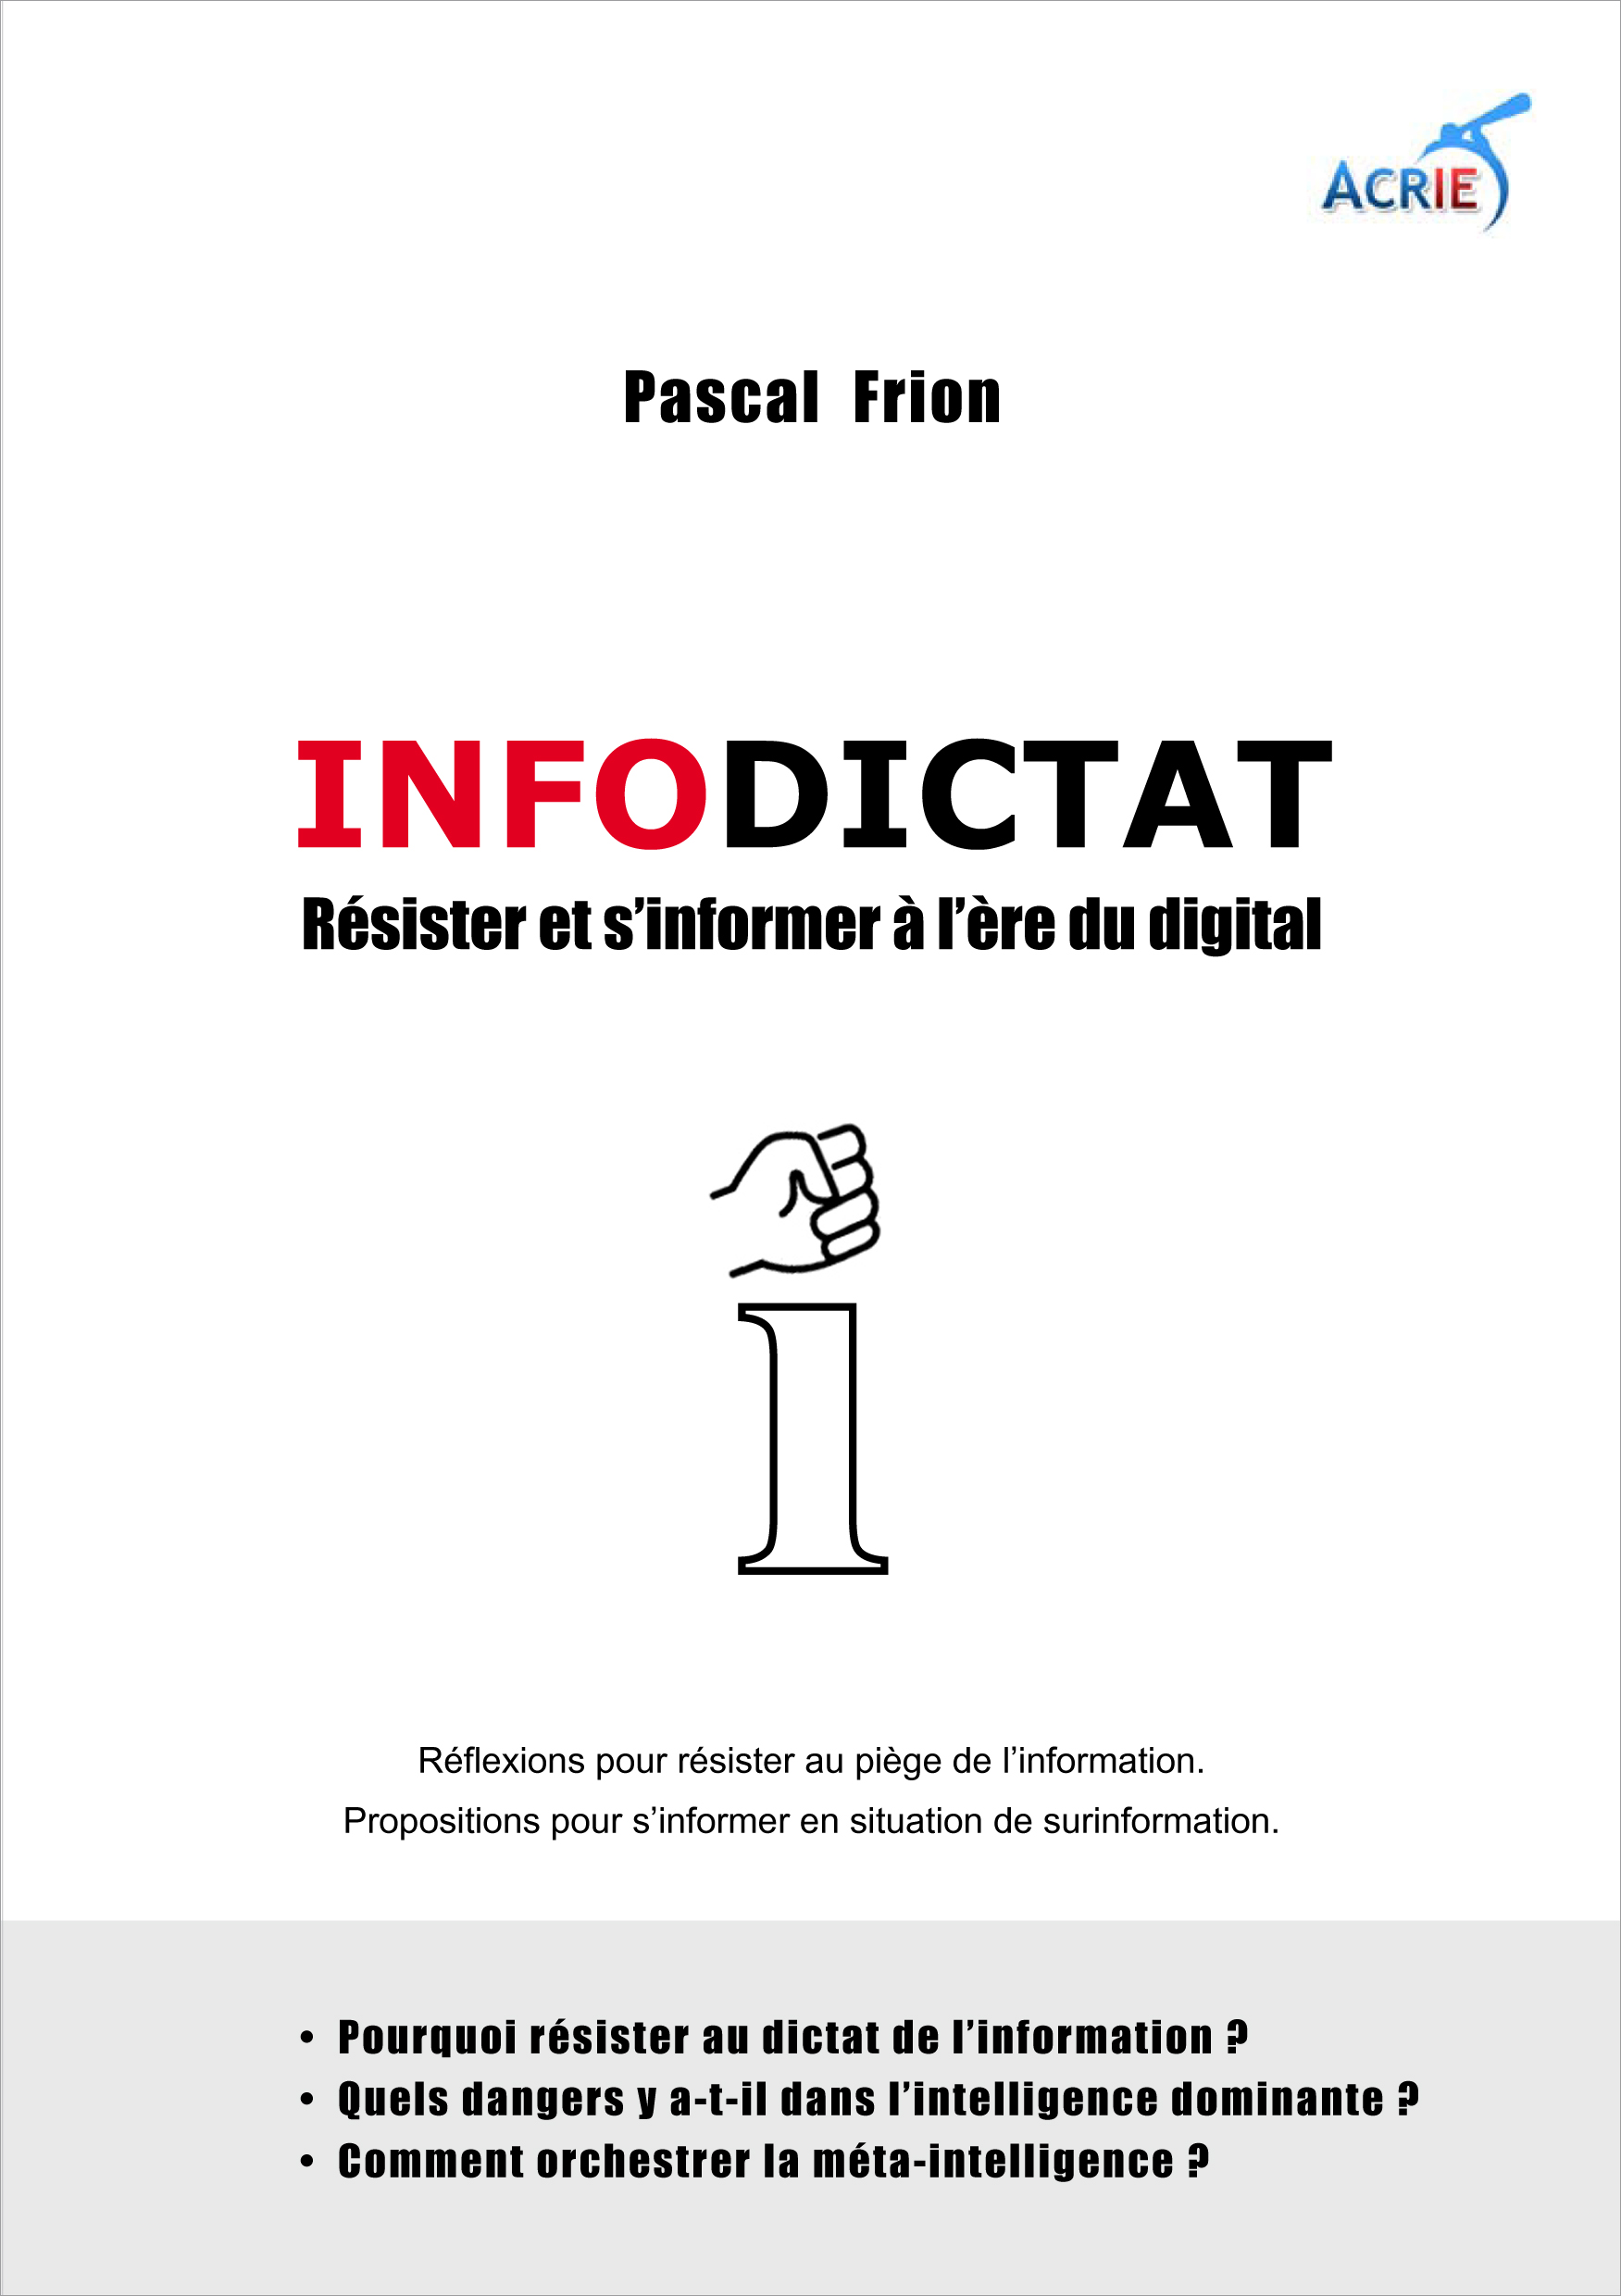 tl_files/download/1 couv infodictat Pascal Frion.jpg